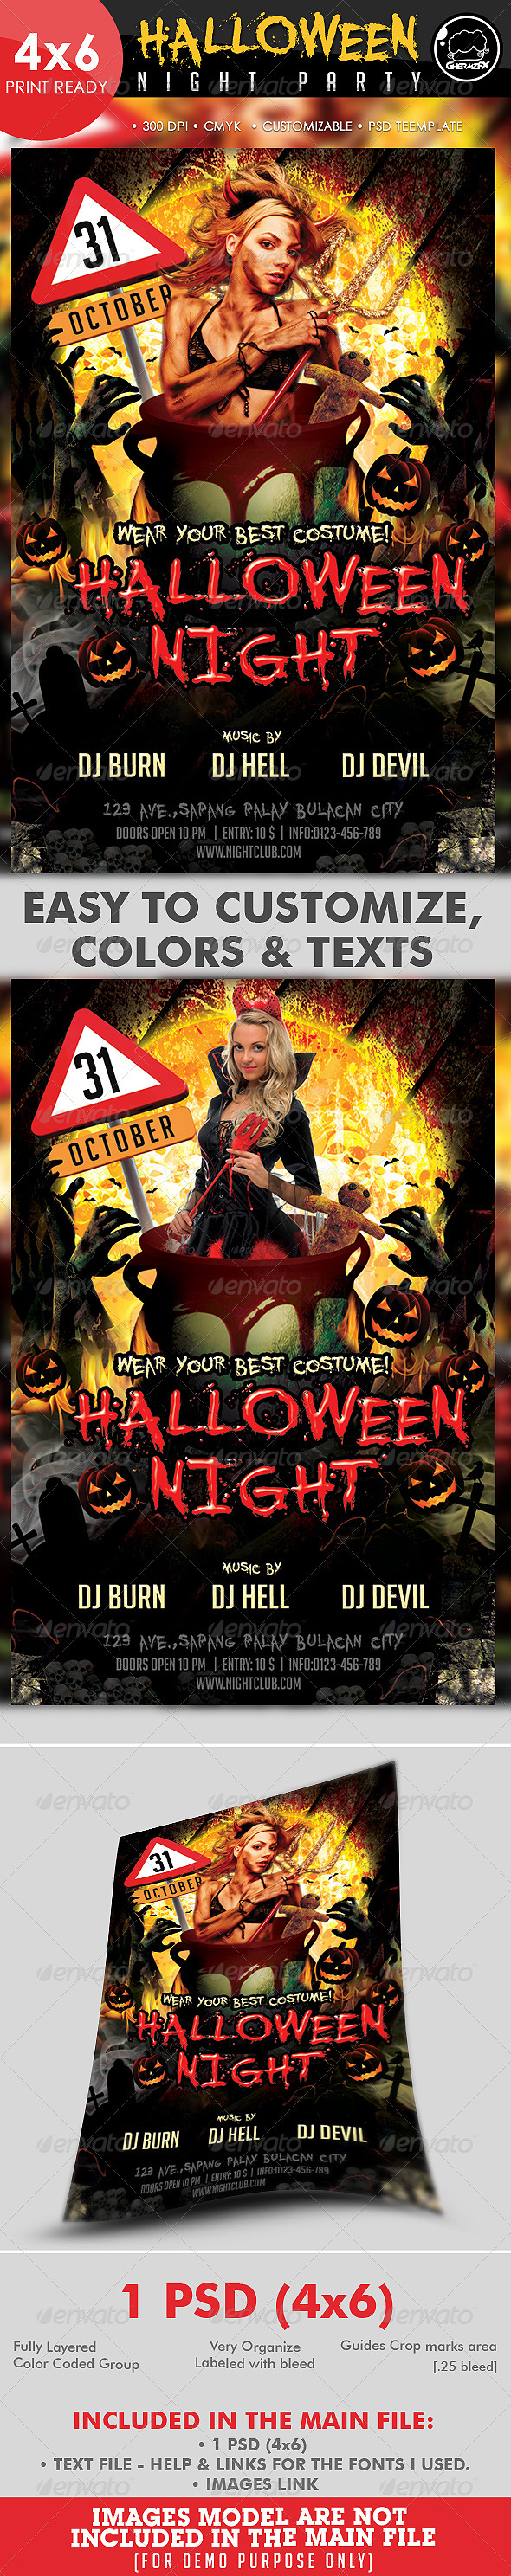 Halloween Night Party Flyer Template - Holidays Events